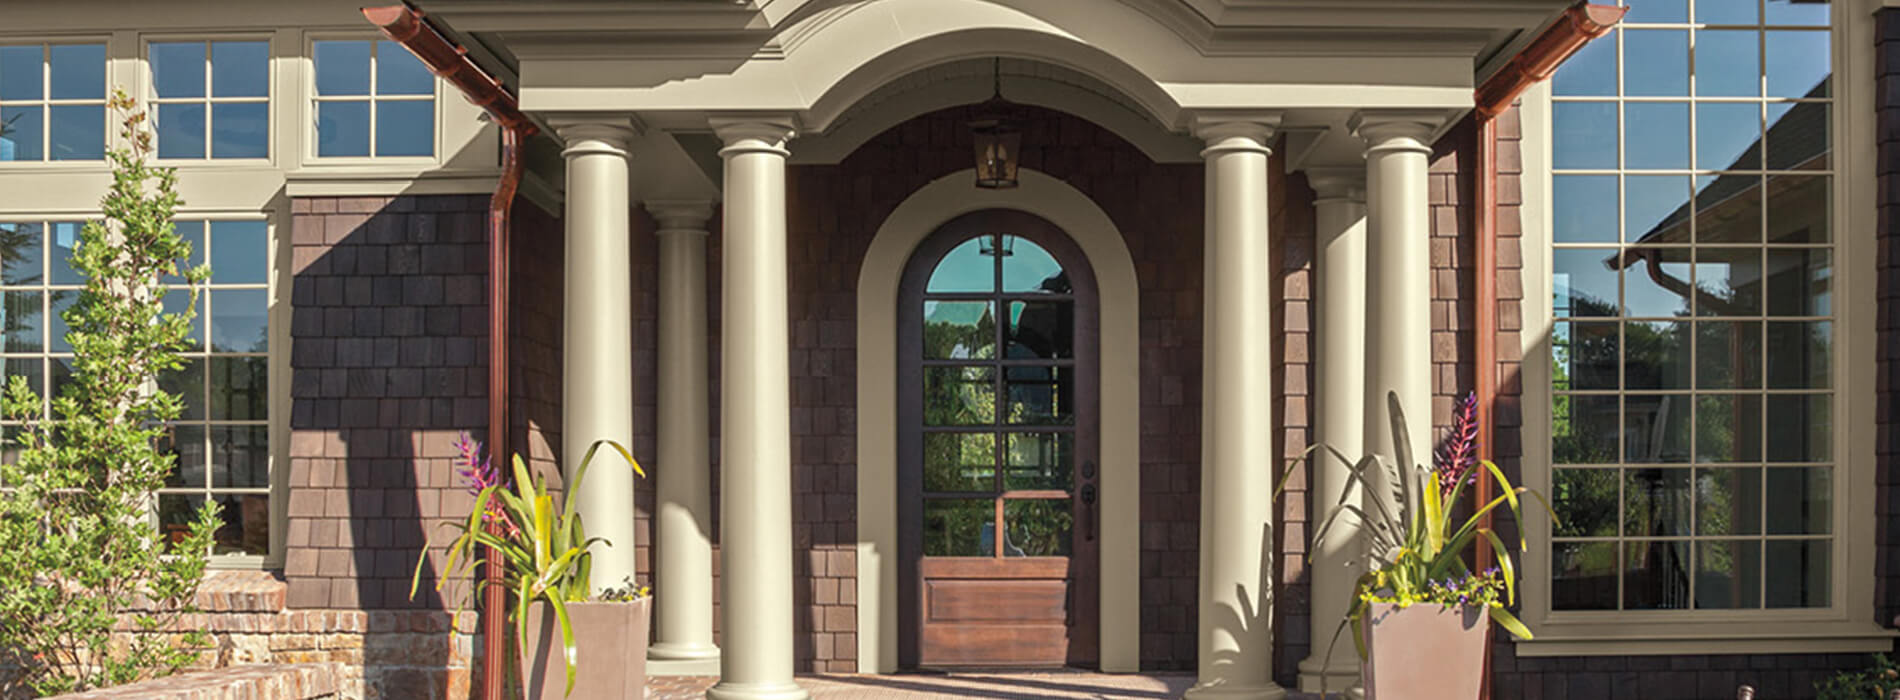 Windows & Doors Buying Guide, Chicago and Skokie IL